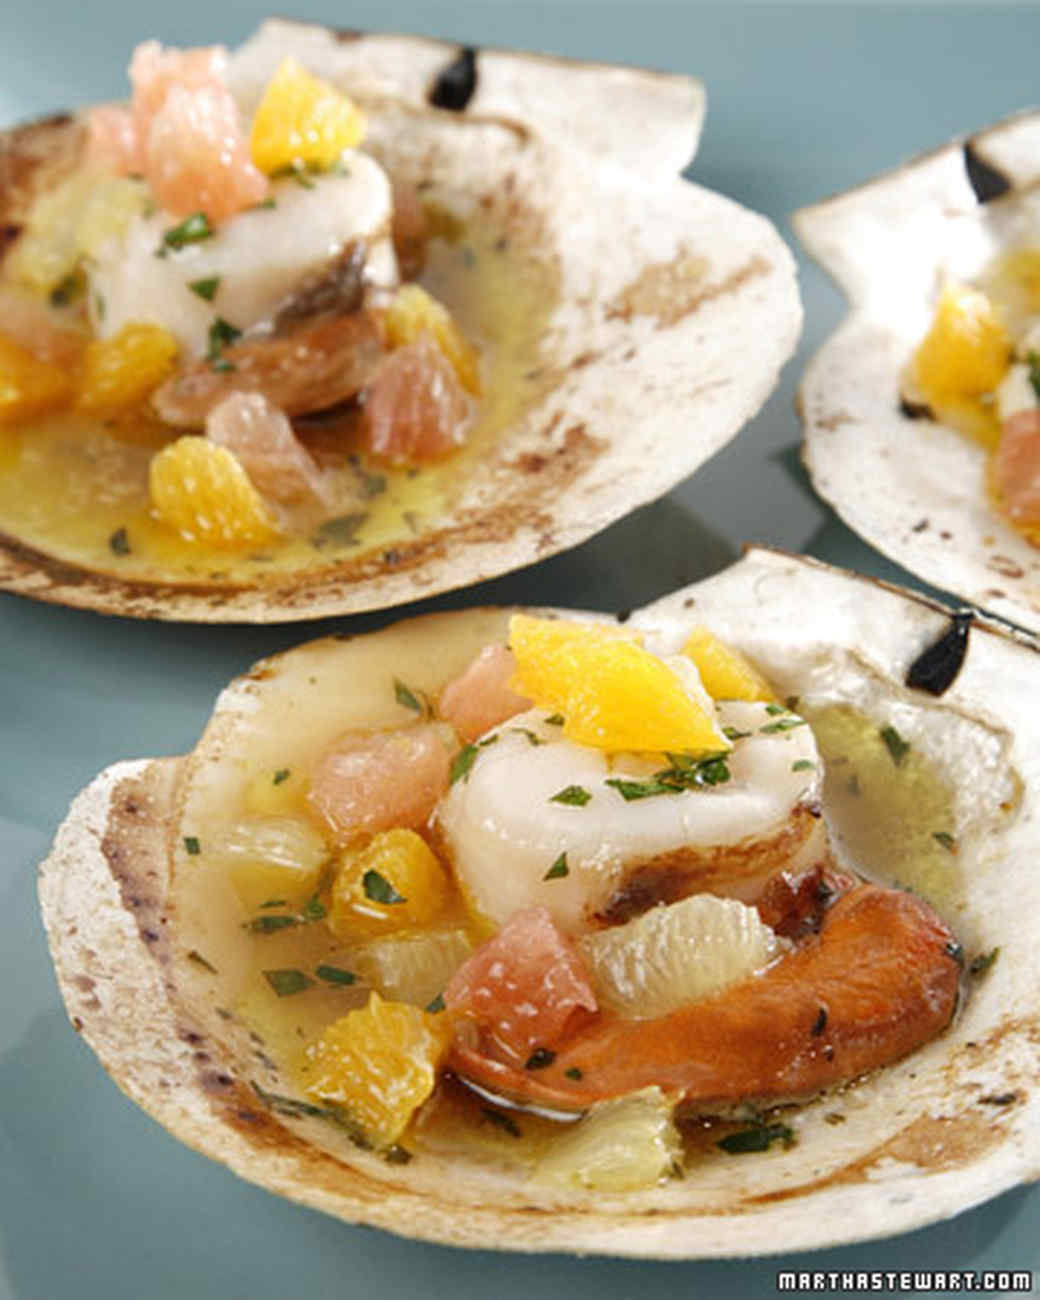 Grilled Scallops In The Half Shell With Citrus Fruits And